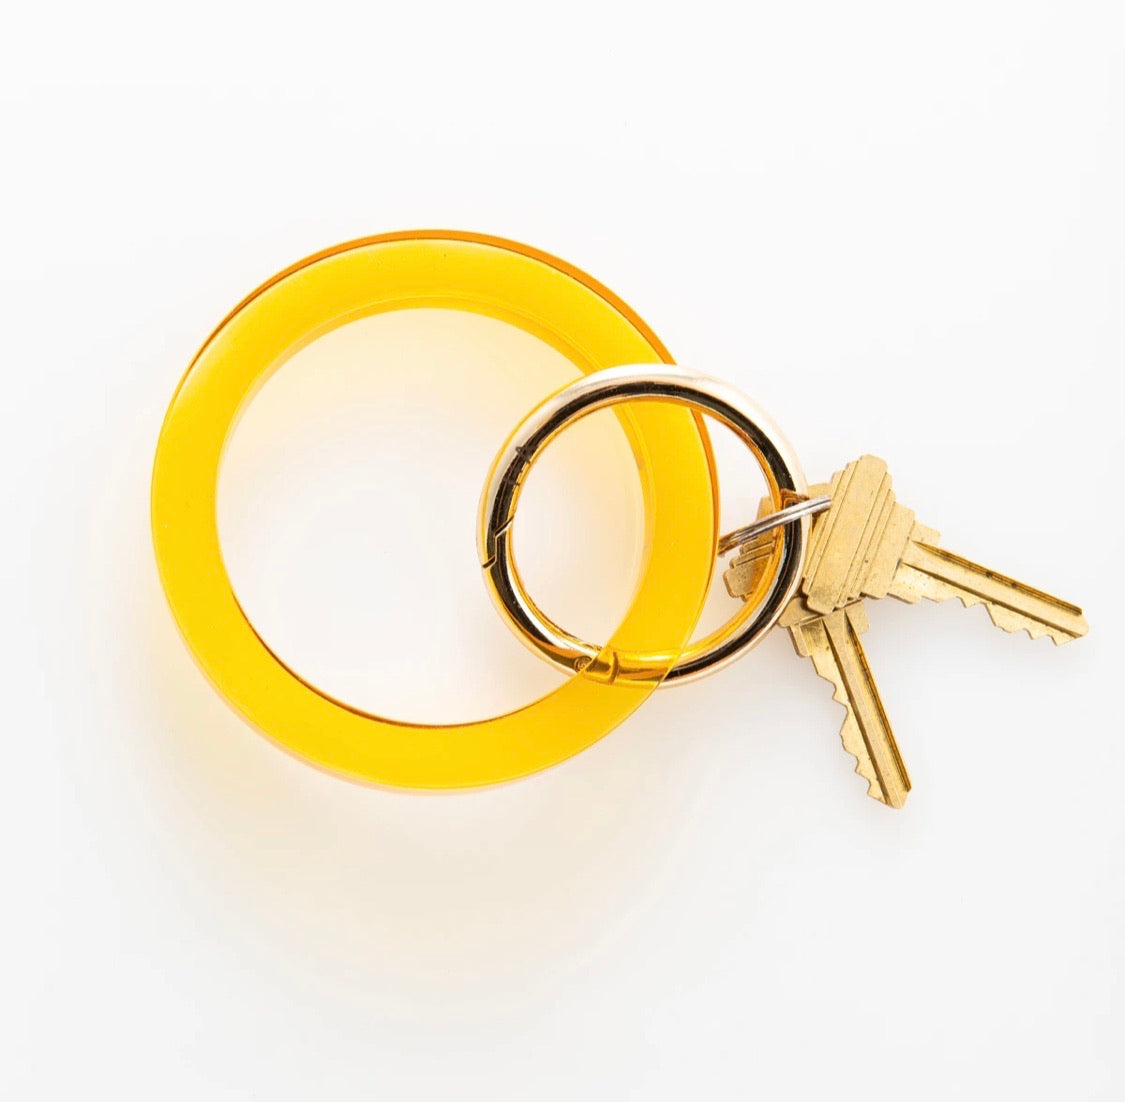 Ink+Alloy: Amber Lucite Key Ring